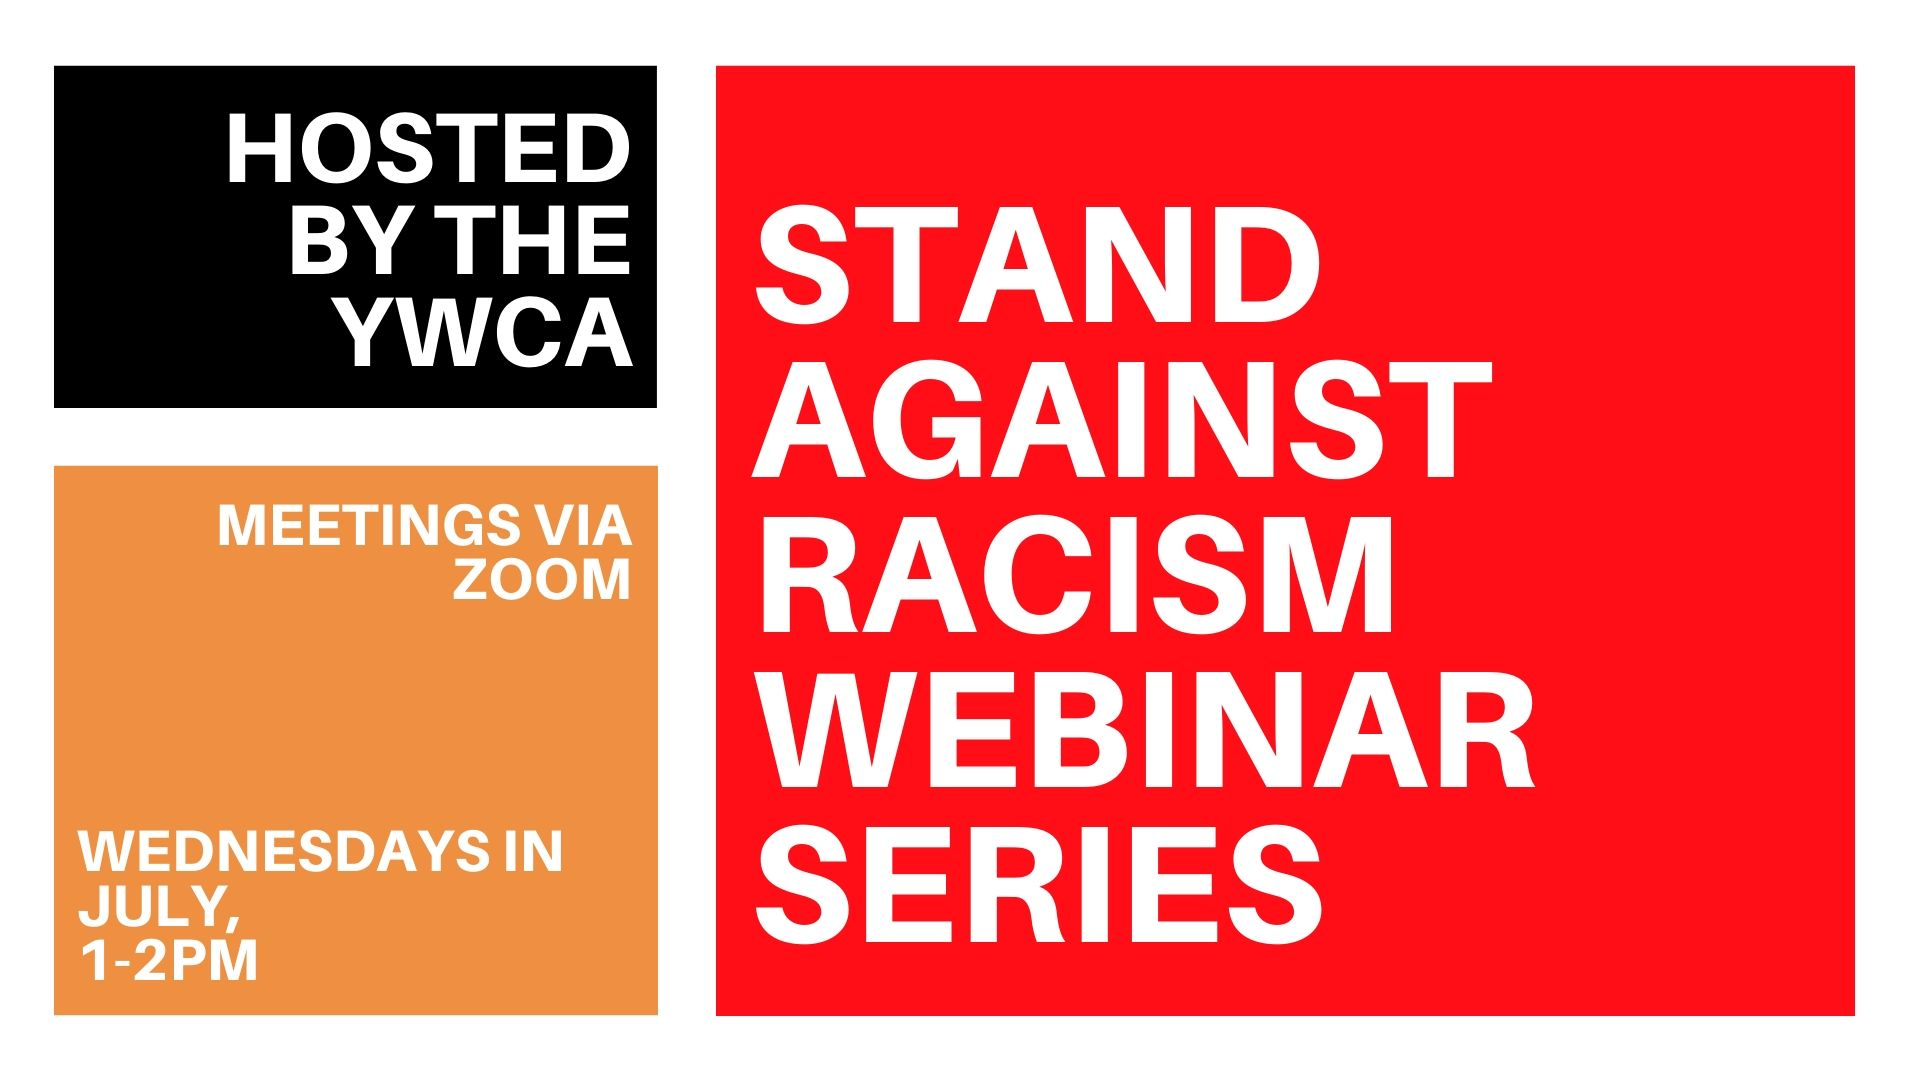 Stand Against Racism Webinar Series